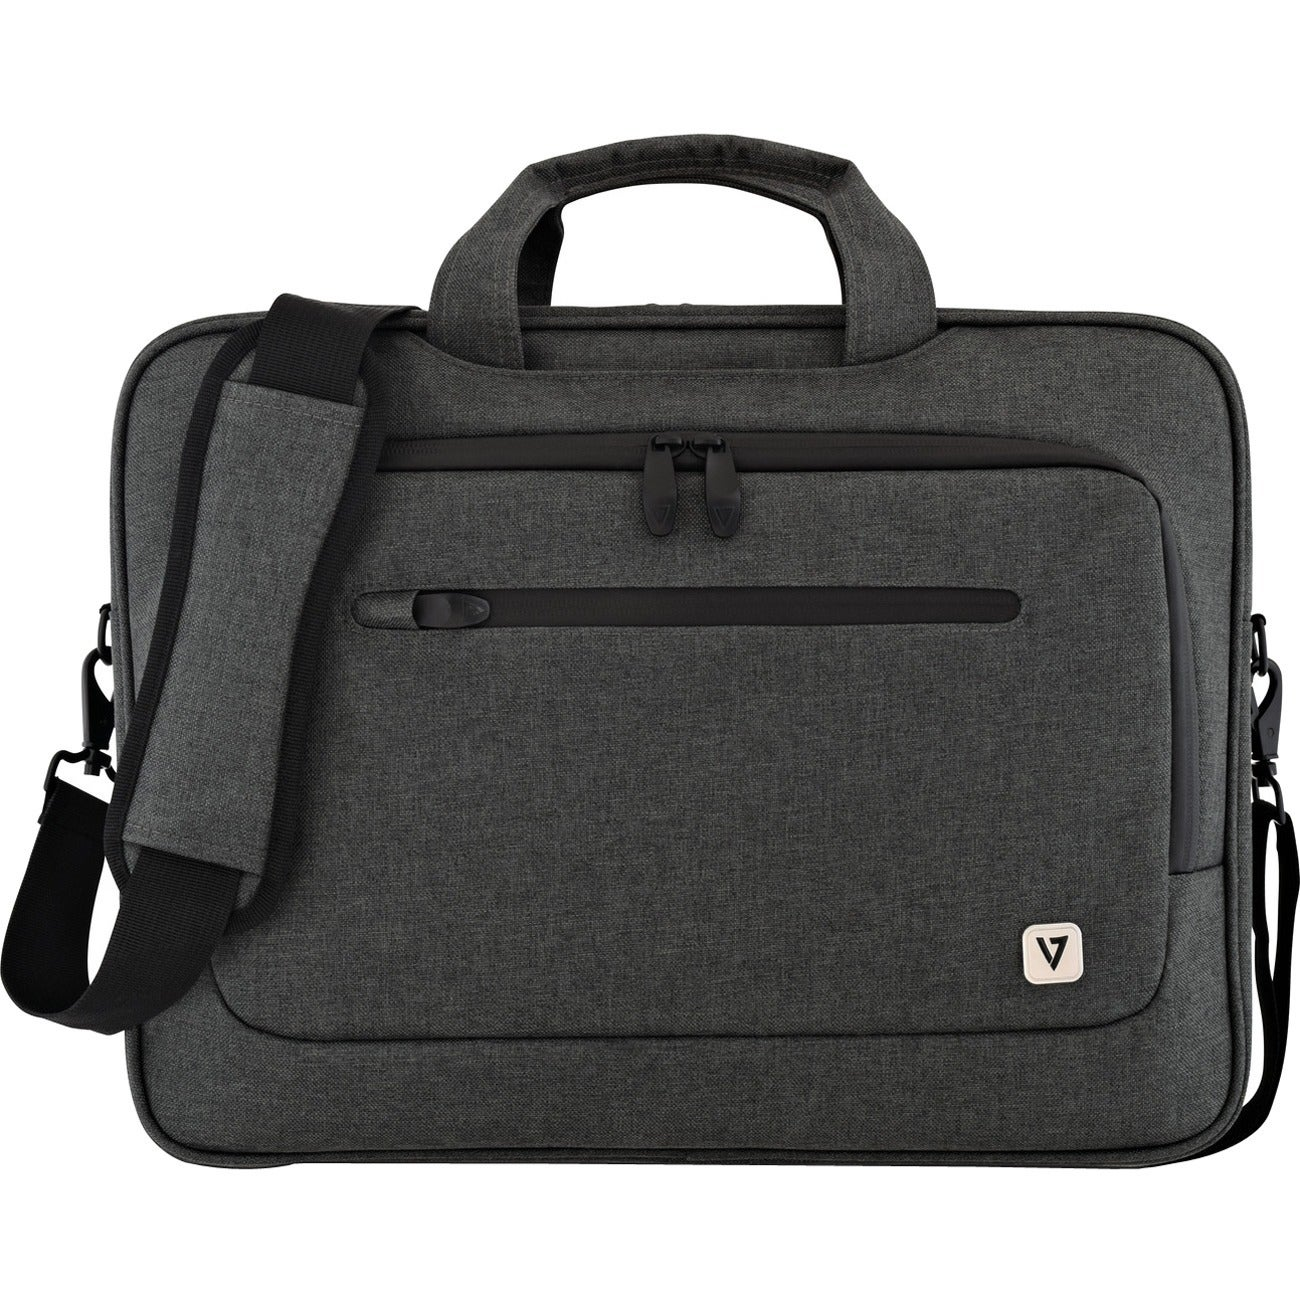 V7 Technology CTPX1-1N Carrying Case (Briefcase) for 15.6...